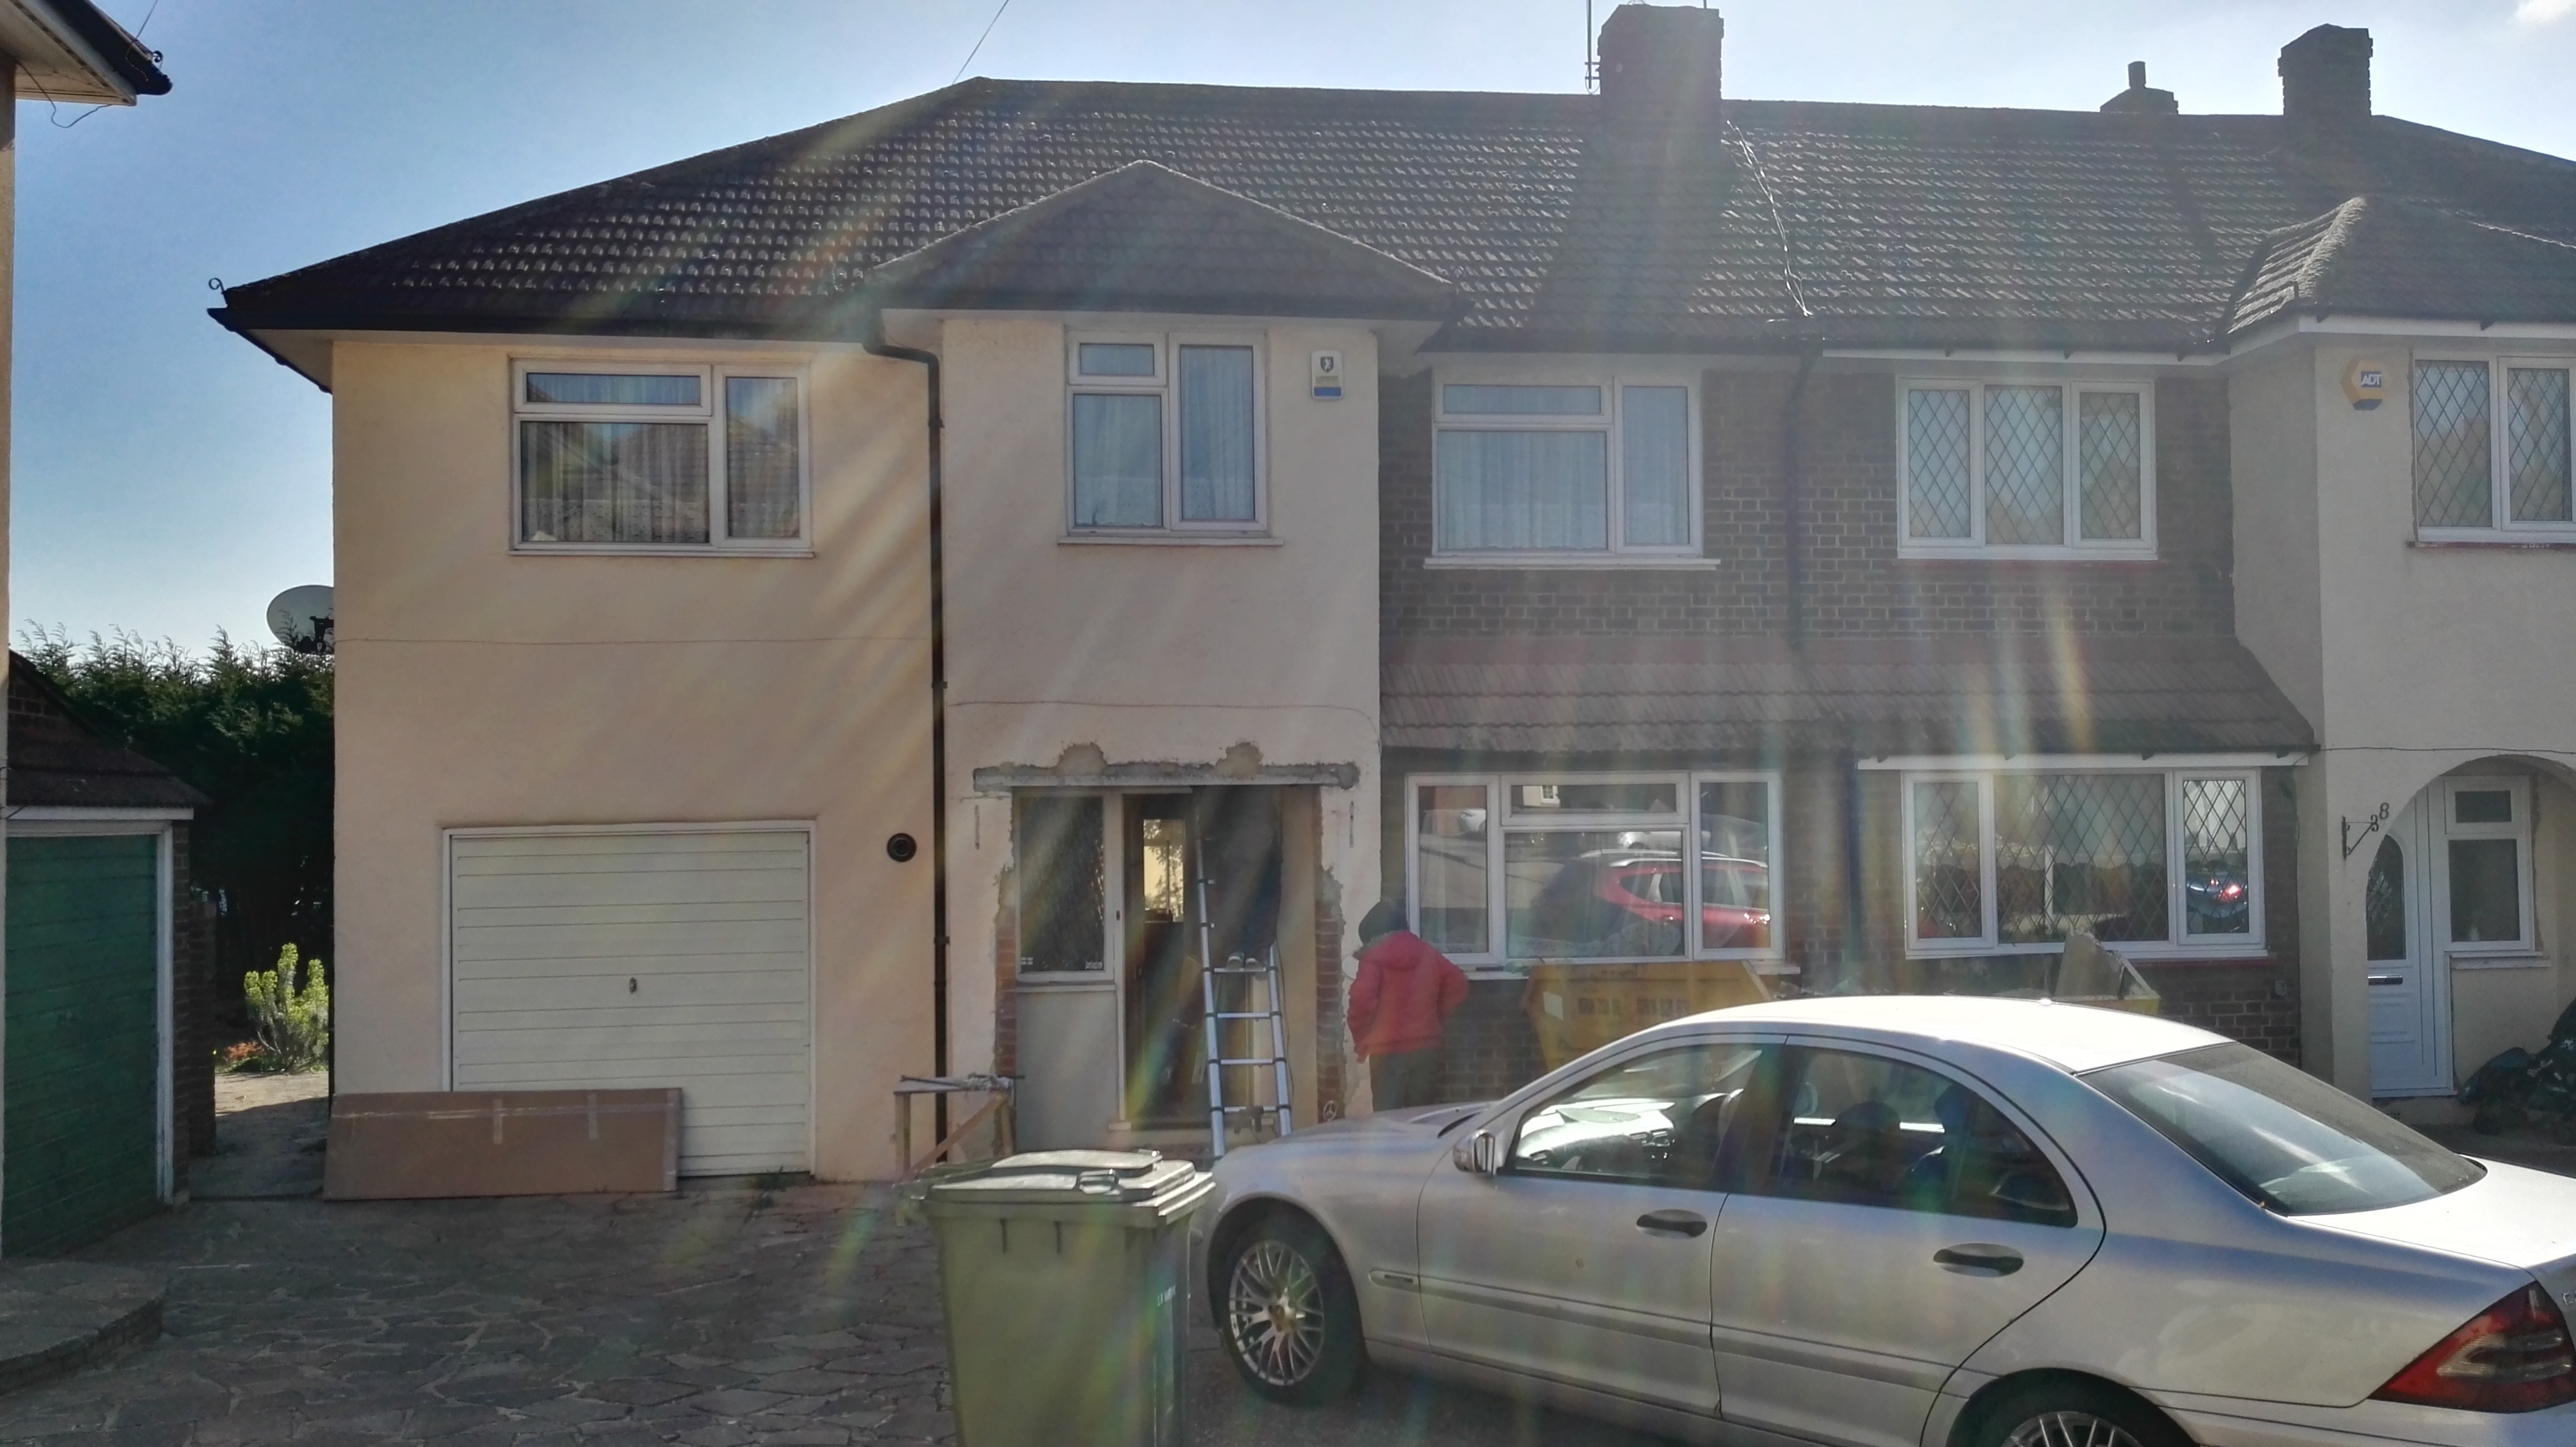 7 Chaseside Close, Romford, RM1 4LZ_